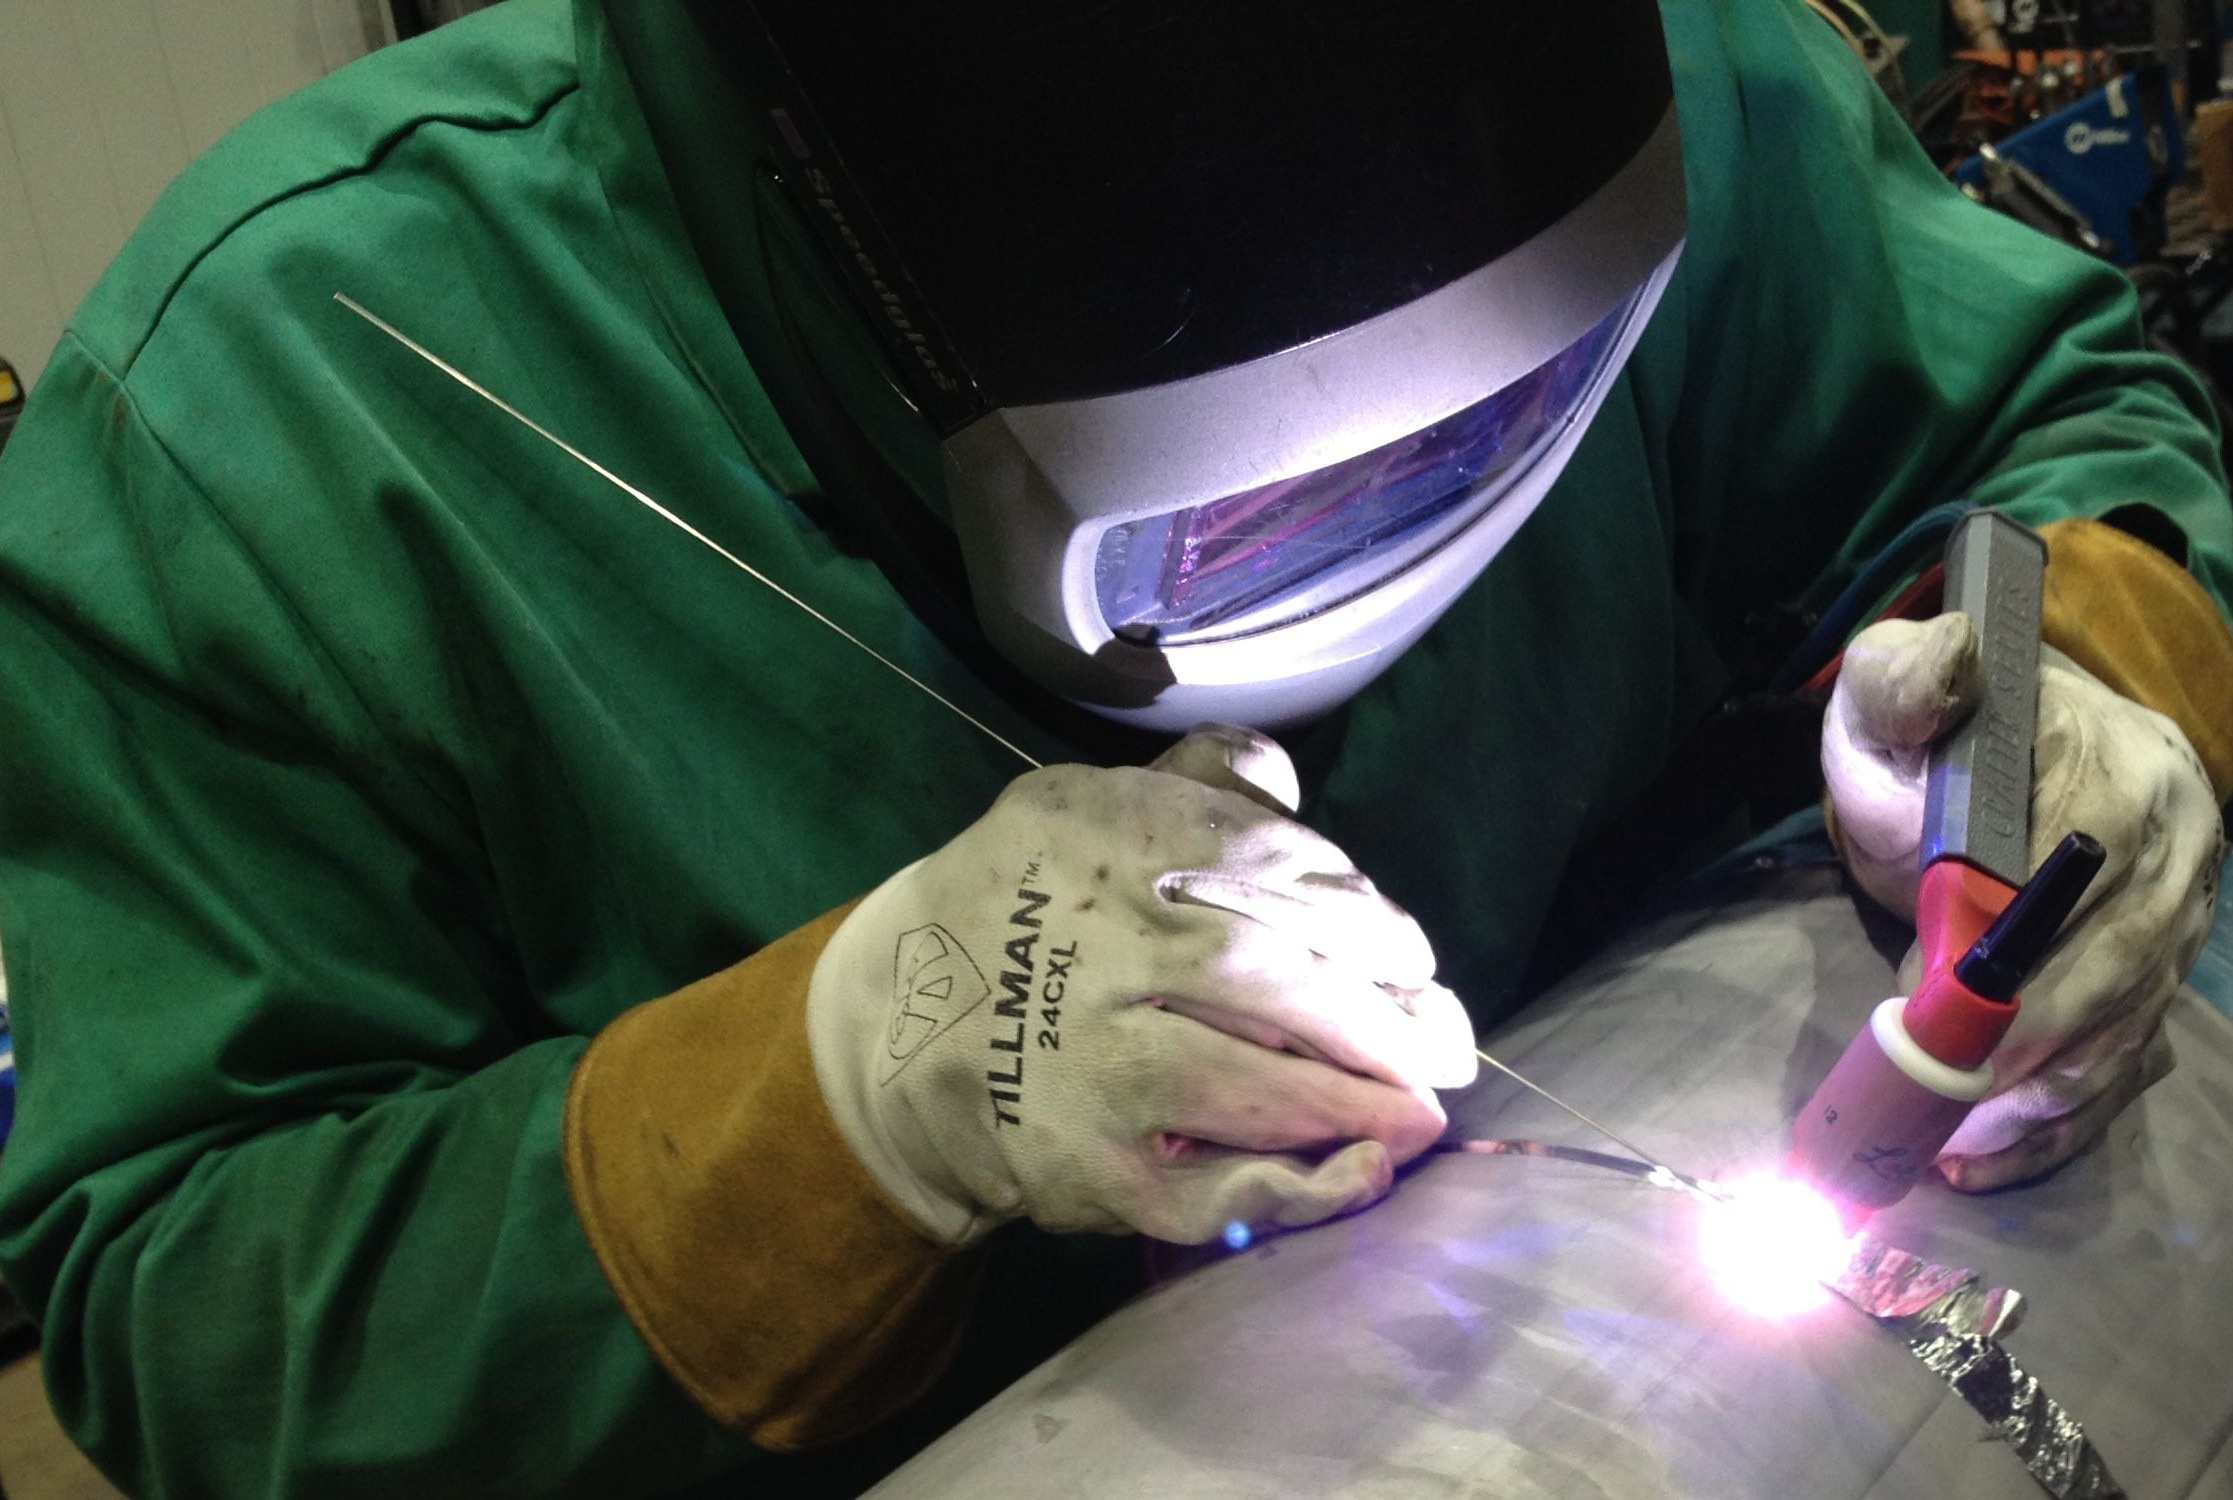 Technical Division's Mike Cooper welds a 12-inch pipe for the SeaQuest berm pipe repair. Environmental conditions for the pipe required a special stainless steel alloy called Duplex 2205, which has higher corrosion resistance than 316 stainless. Photo: Ryan Schultz, AD